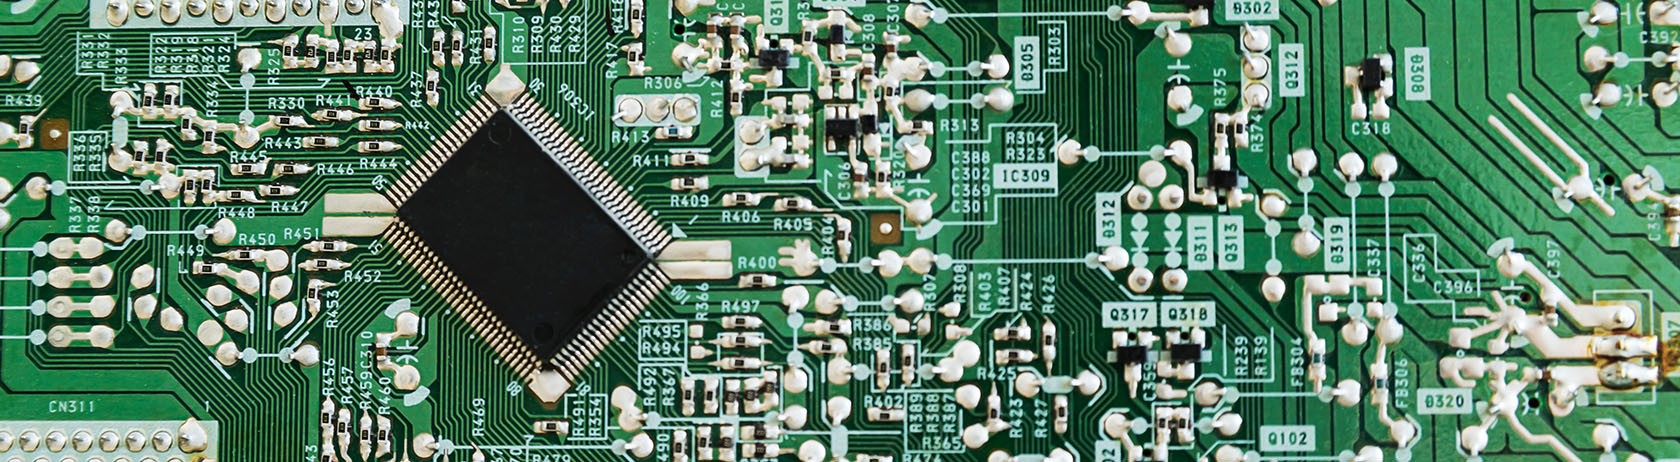 how to prevent your pcb from overheating knowledge centre rh essentracomponents com